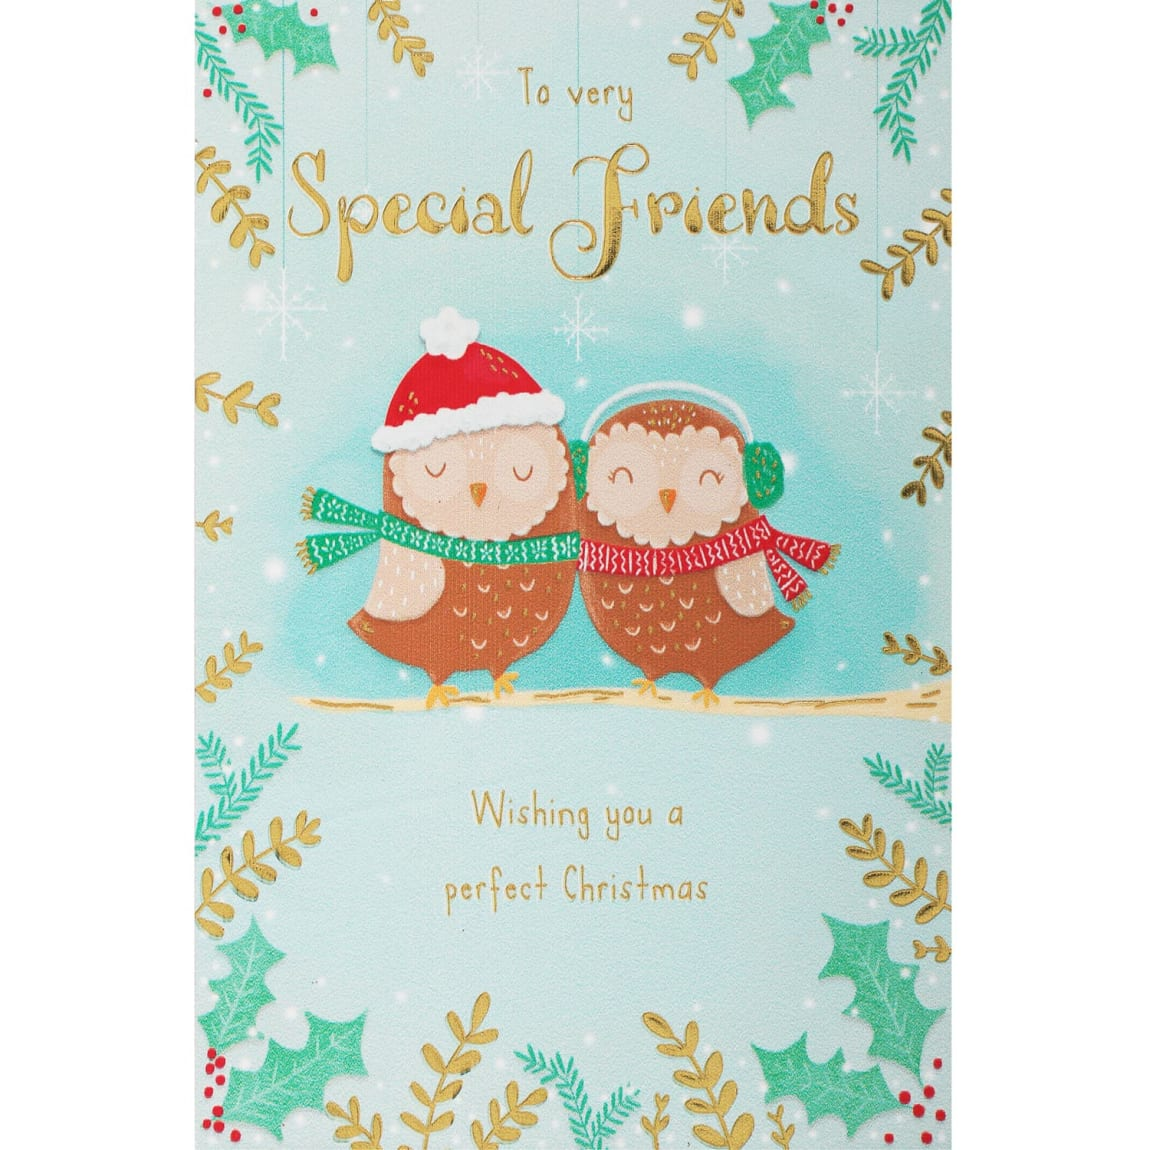 To Special Friends - Christmas Card